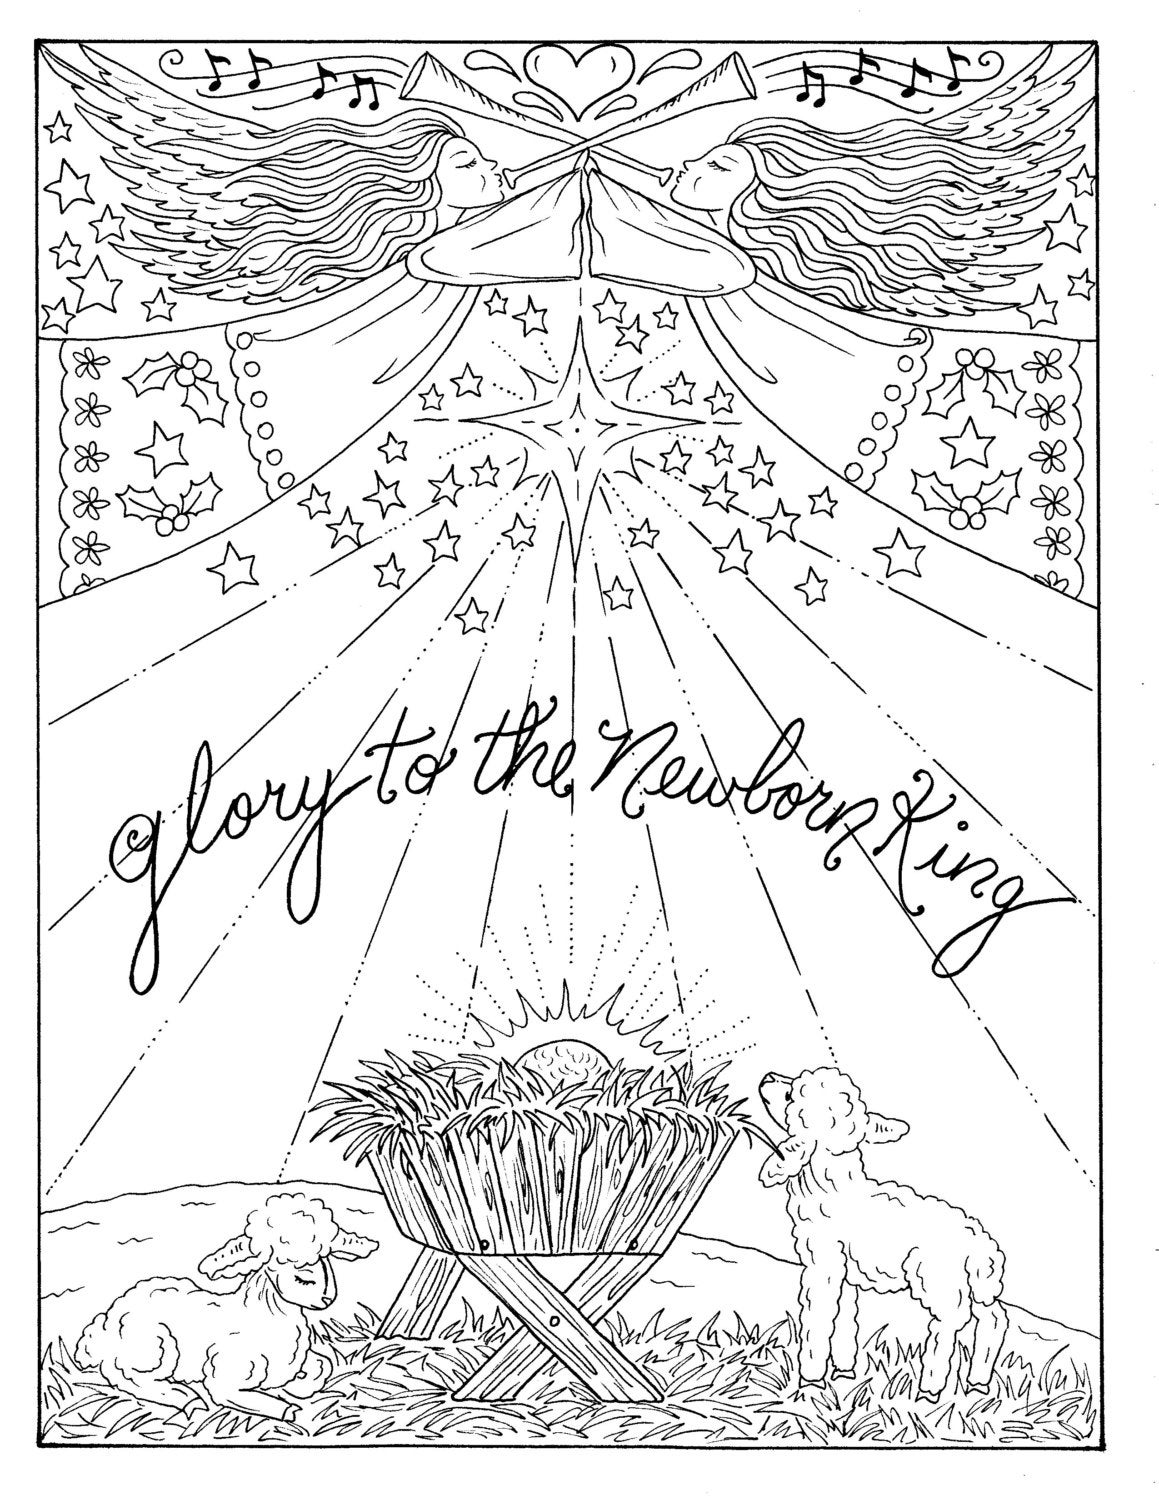 christmas religious coloring pages christmas christian coloring page holidays coloring adult pages christmas religious coloring